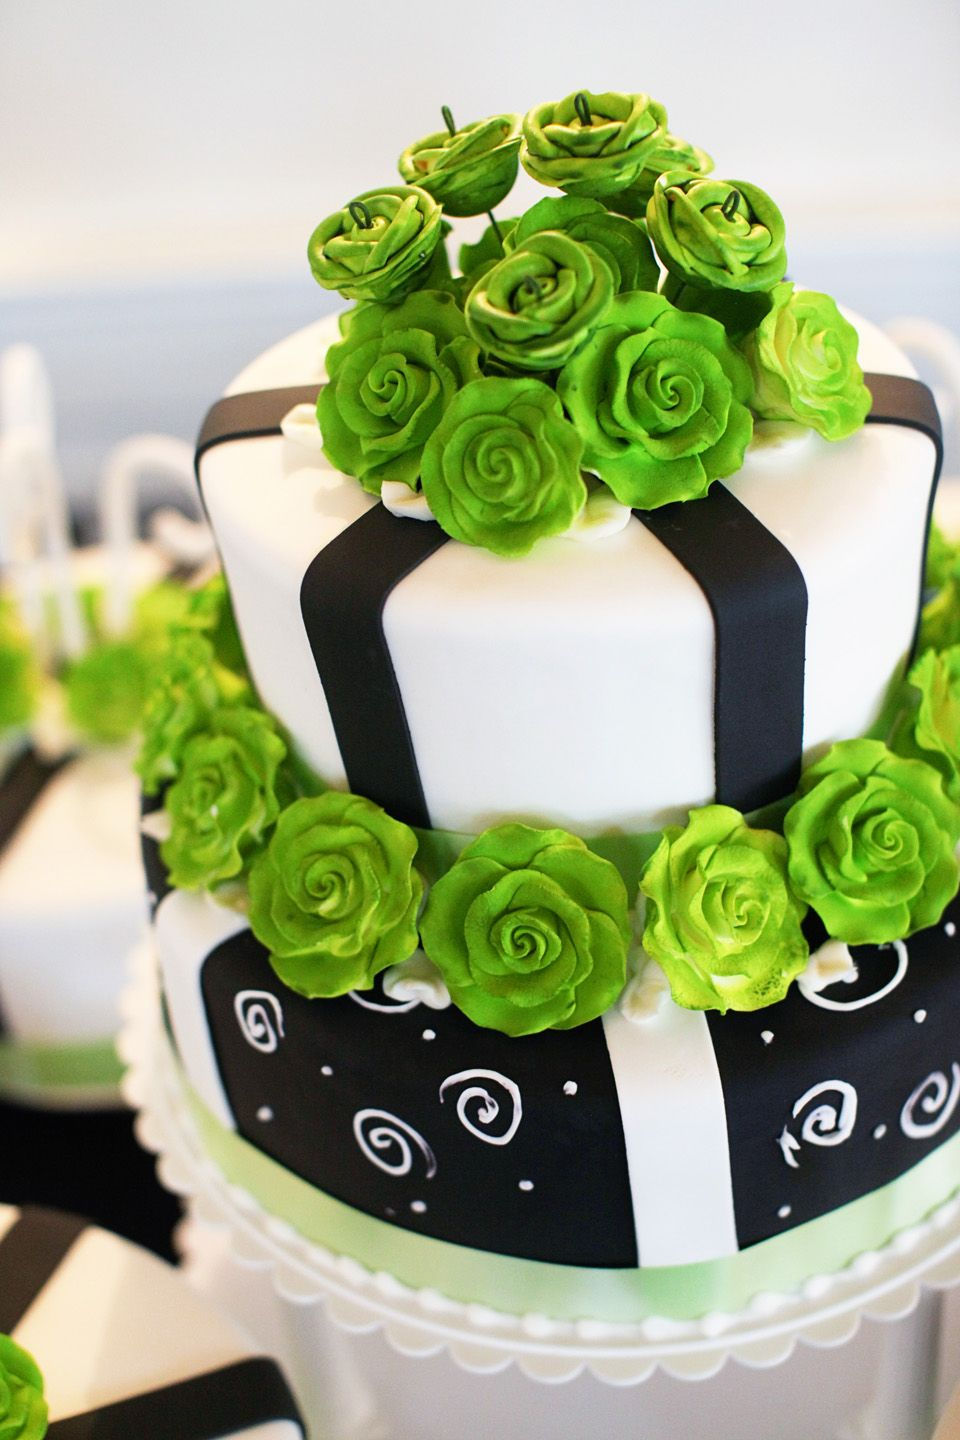 Intricate Lime Green Roses Made Of Icing Top A Two Tiered Black And White Wed